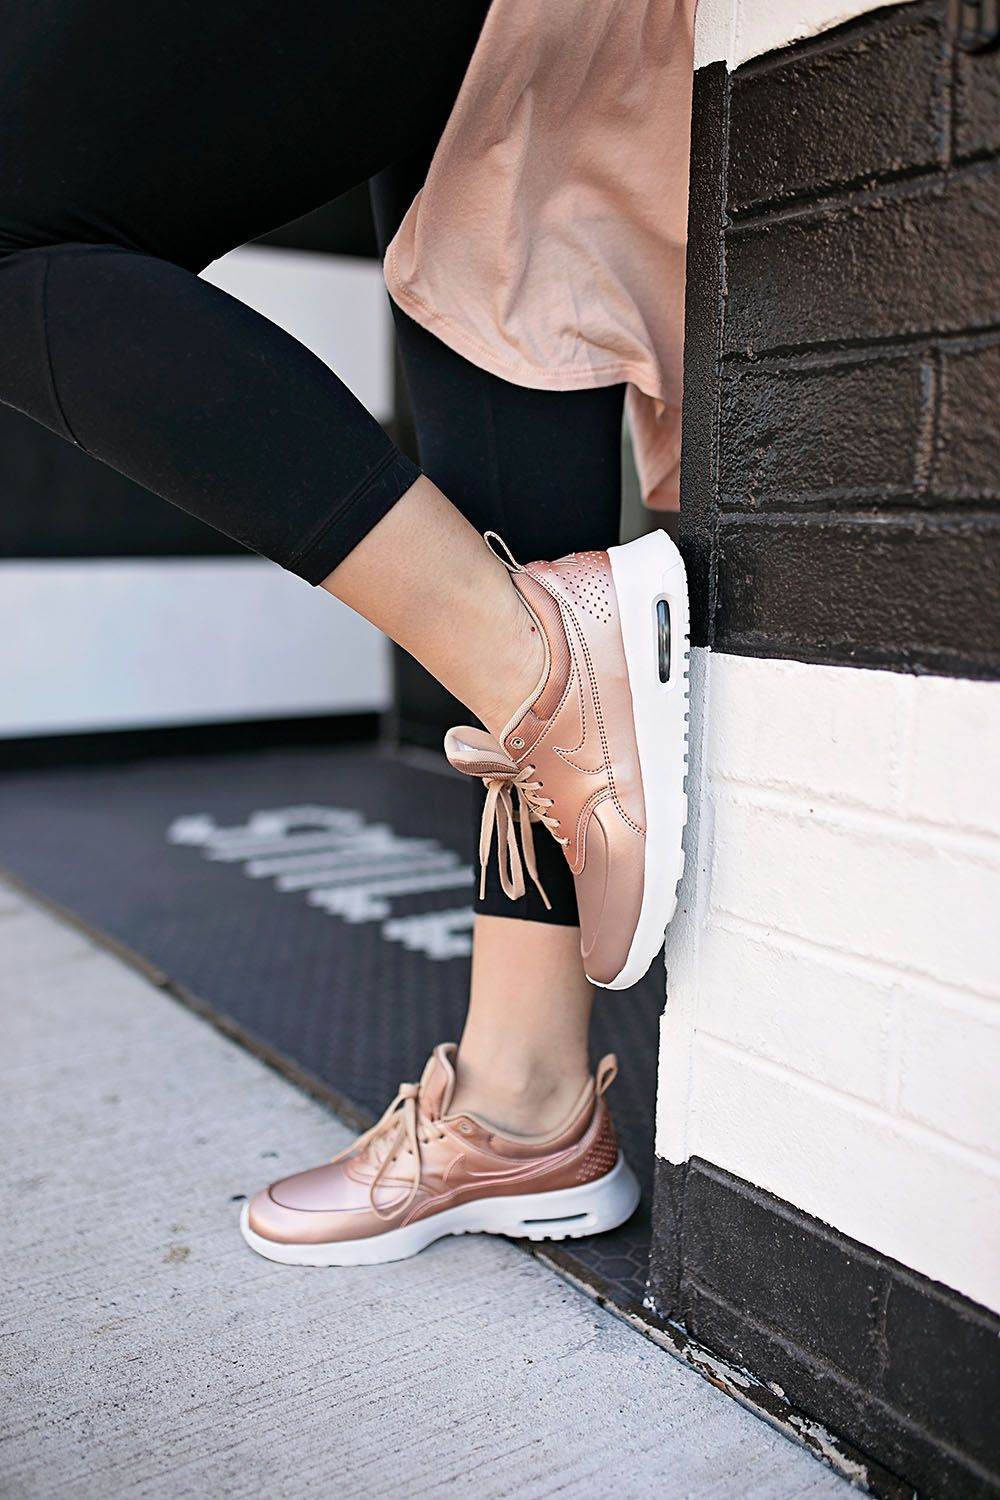 brand new 796c8 33f2f If you re anything like me, these rose gold metallic sneakers were the  first things to catch your eye. The obsession didn t stop there.